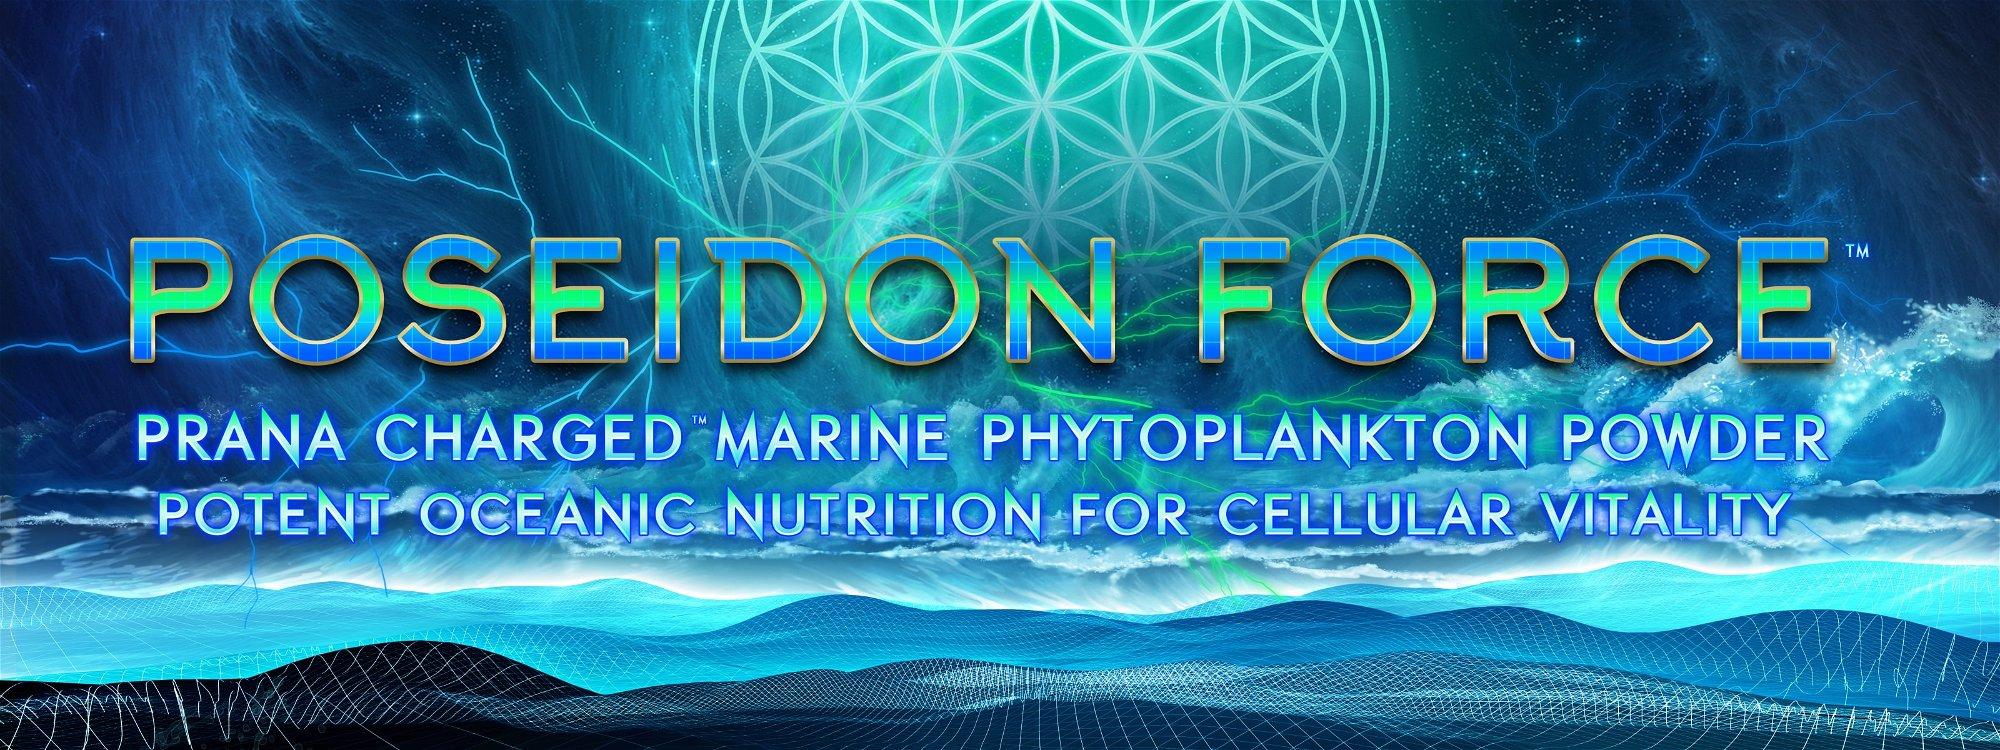 poseidon force marine phytoplankton powder flower of life